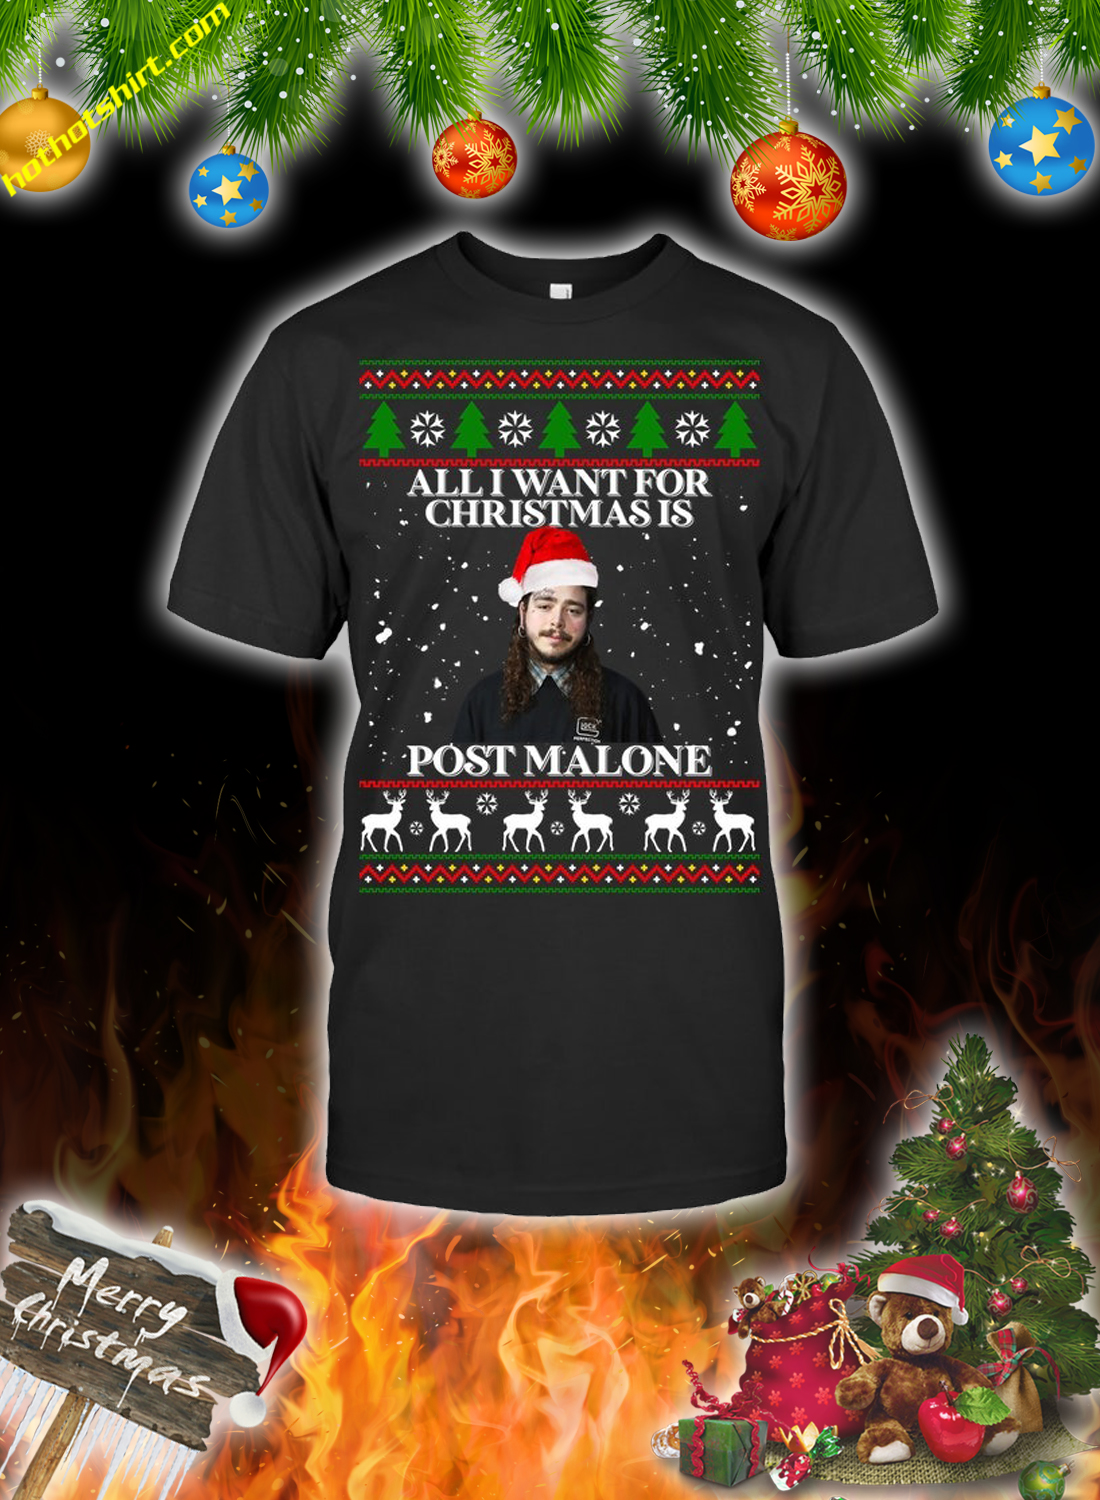 All i want for christmas is post malone christmas sweatshirt and jumper 2